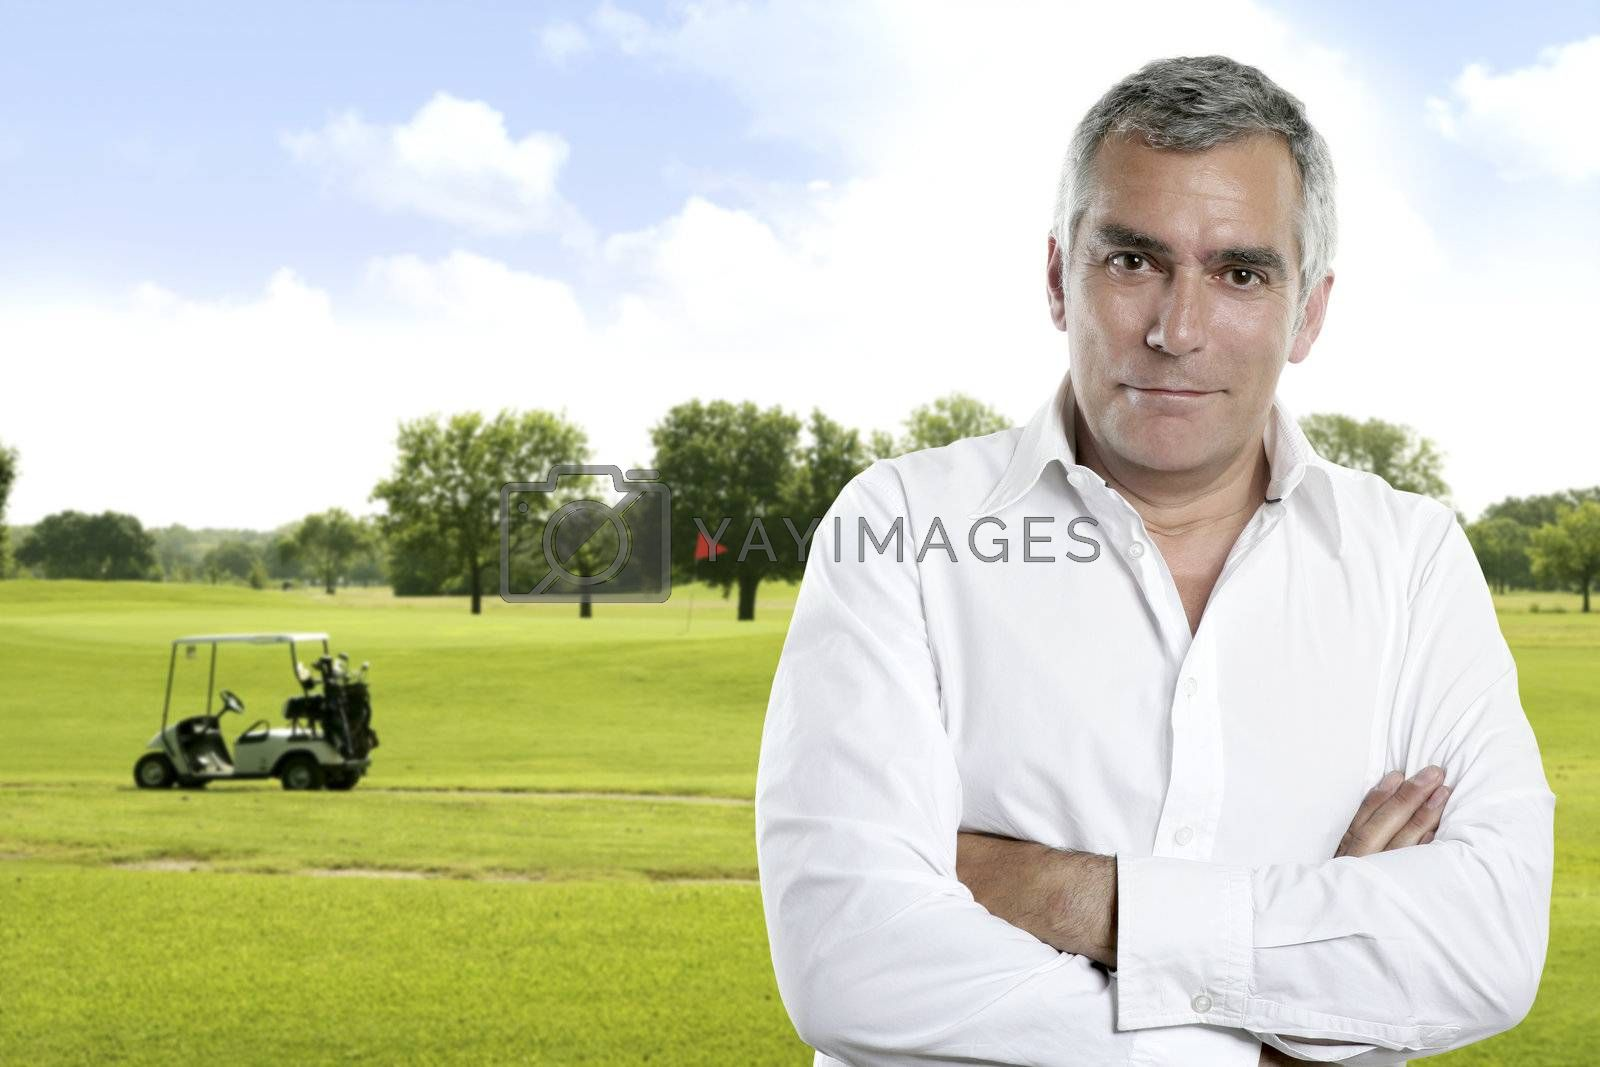 senior golfer man portrait in green course outdoor with cart background